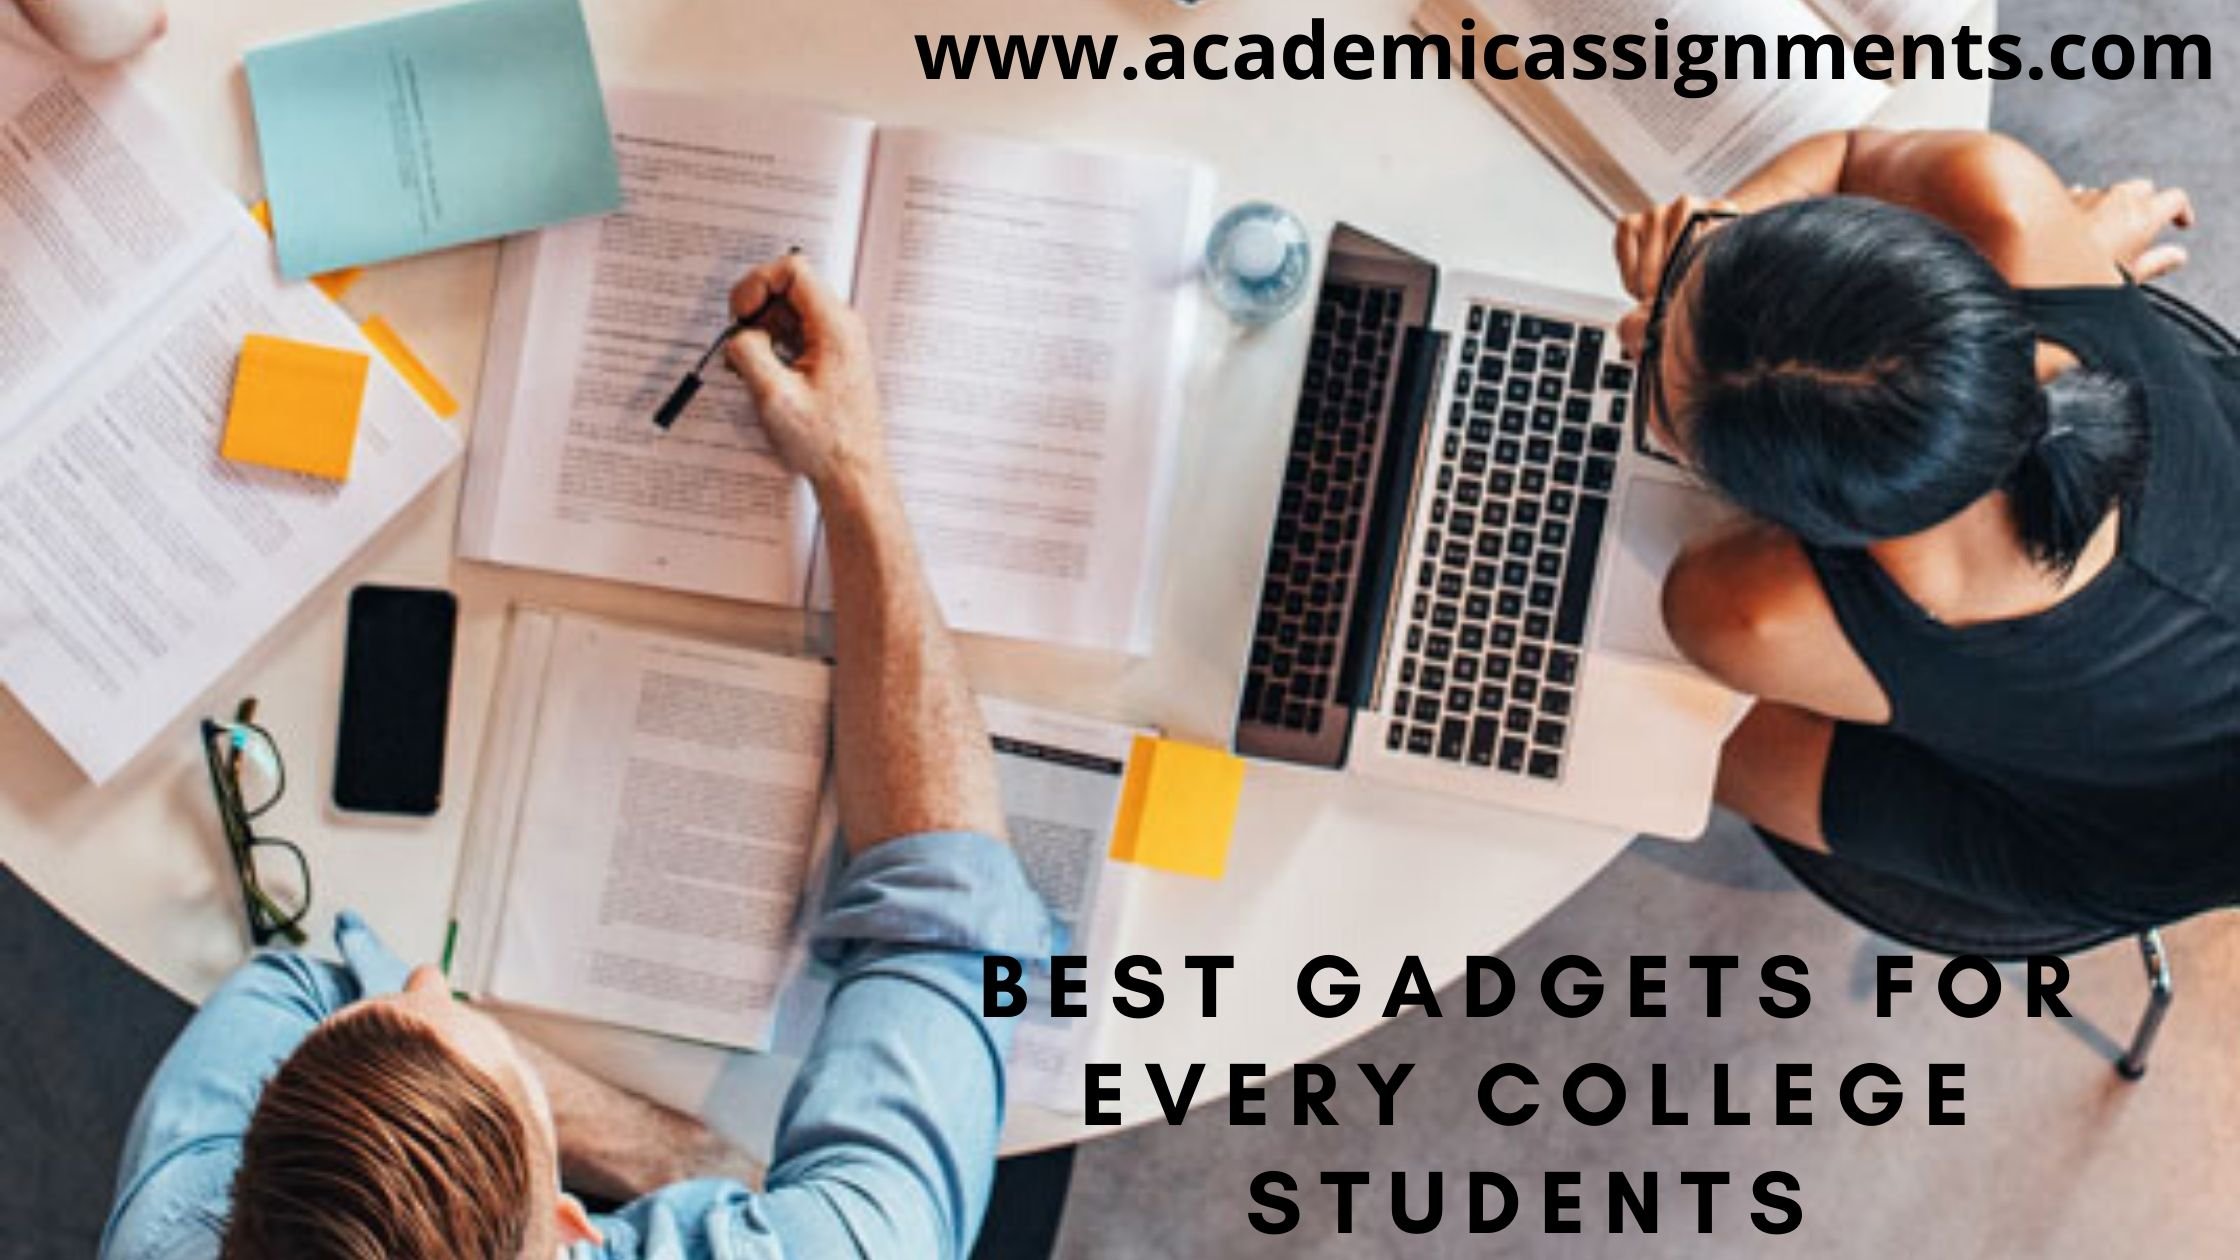 Best Gadgets For Every College Students